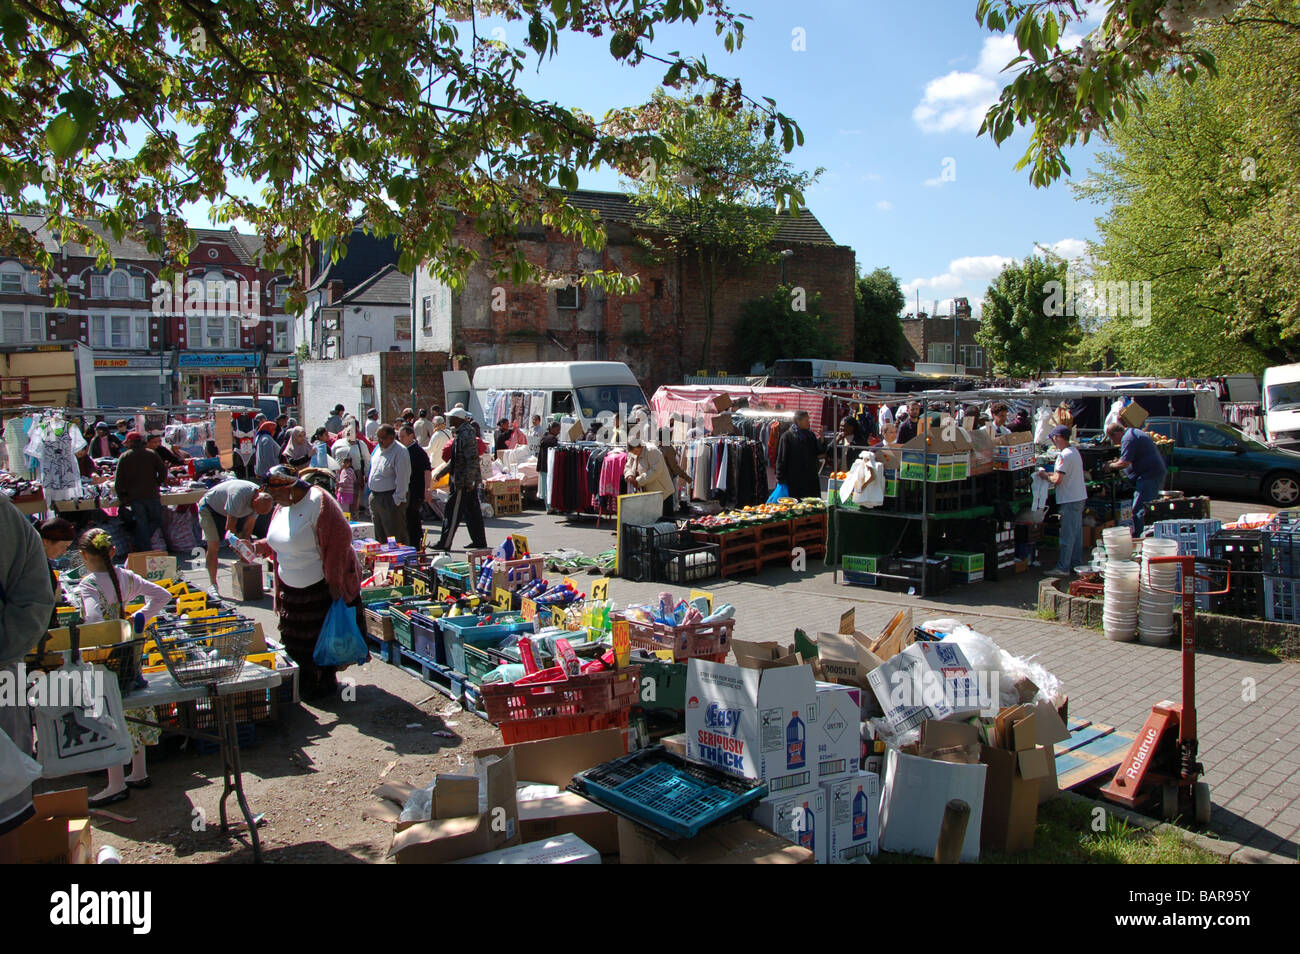 Shoppers at Wednesday's Church road market in Willesden, London, England, Uk - Stock Image